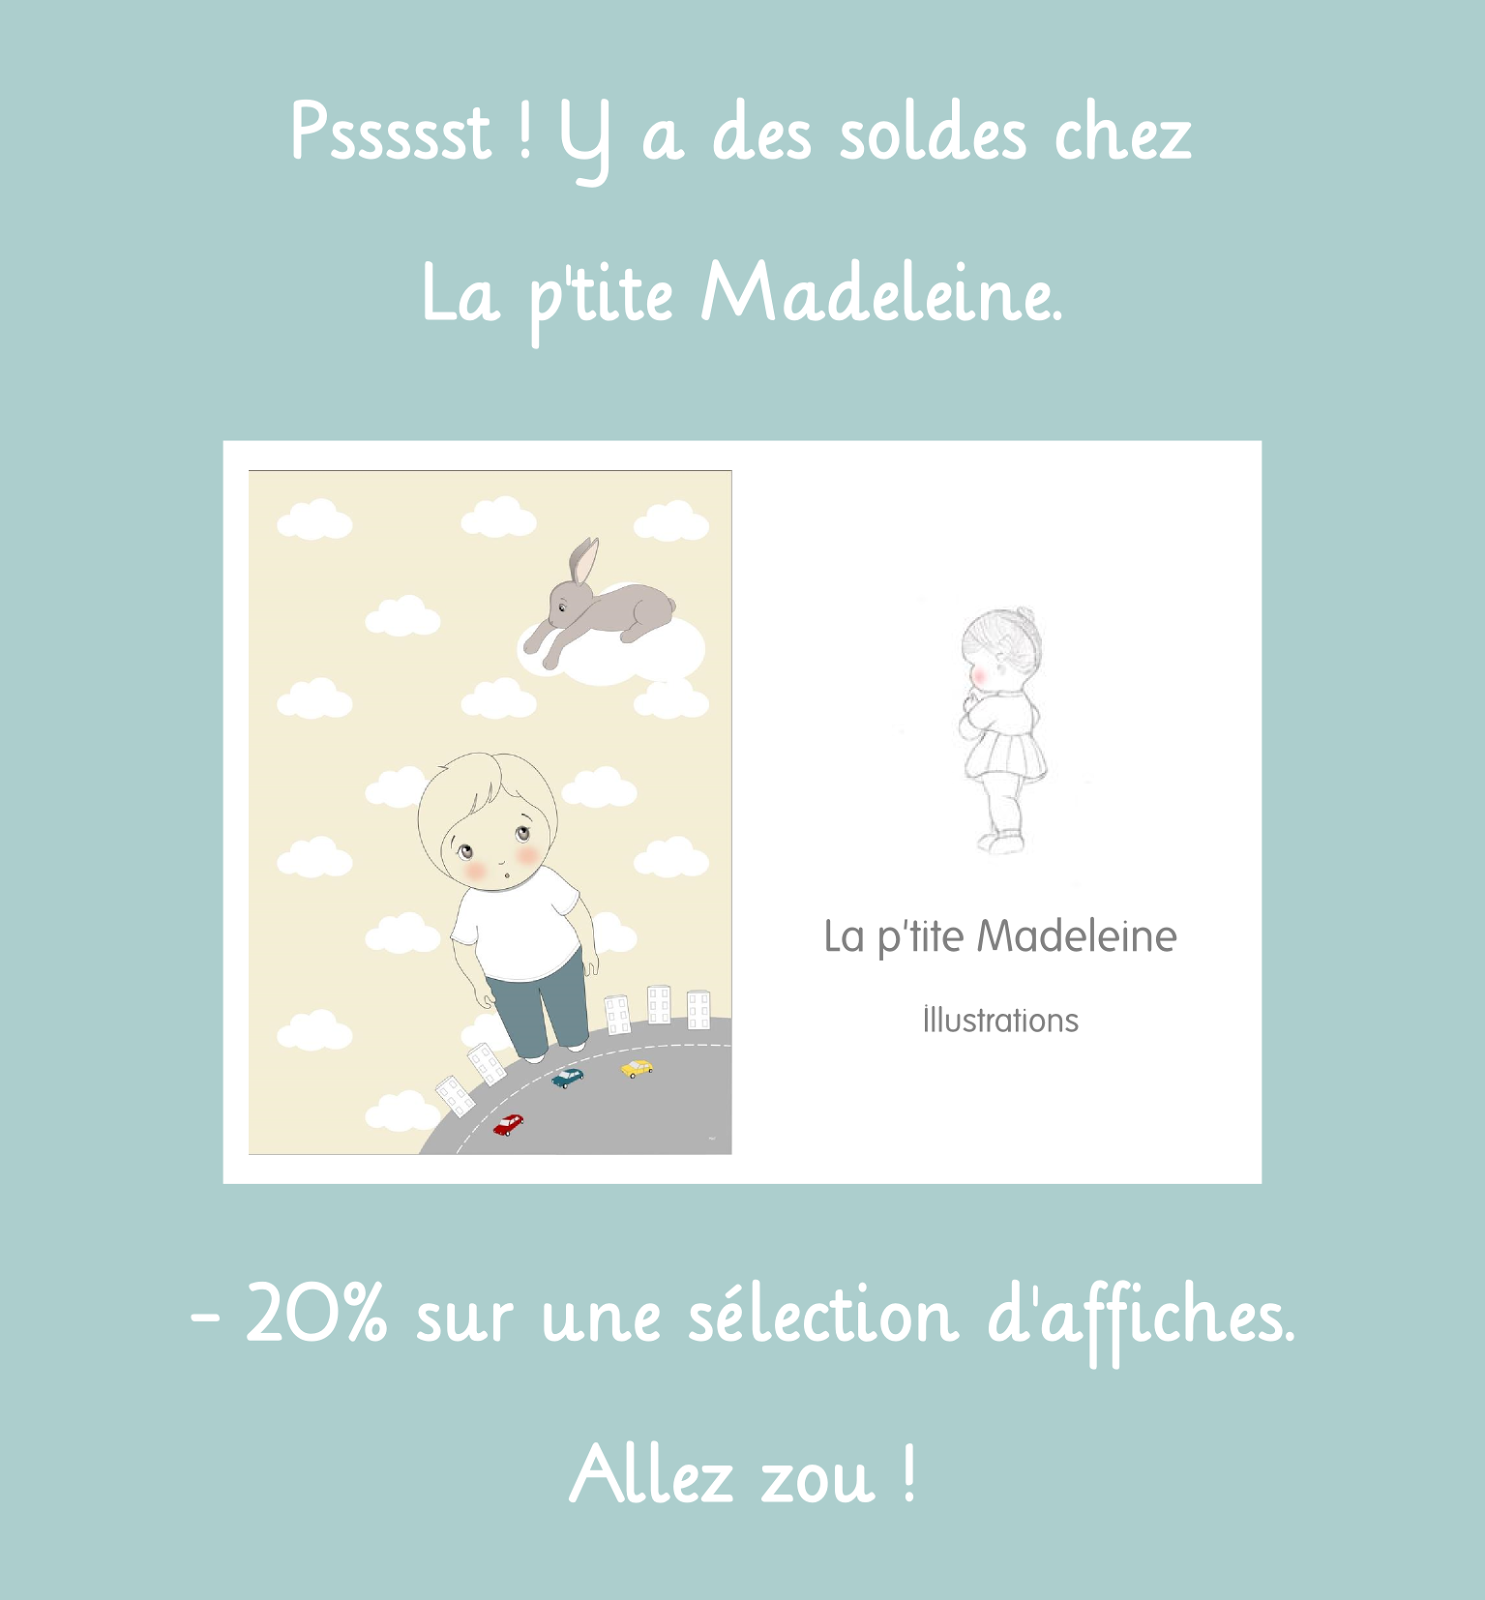 http://www.laptitemadeleine.com/category/soldes-20